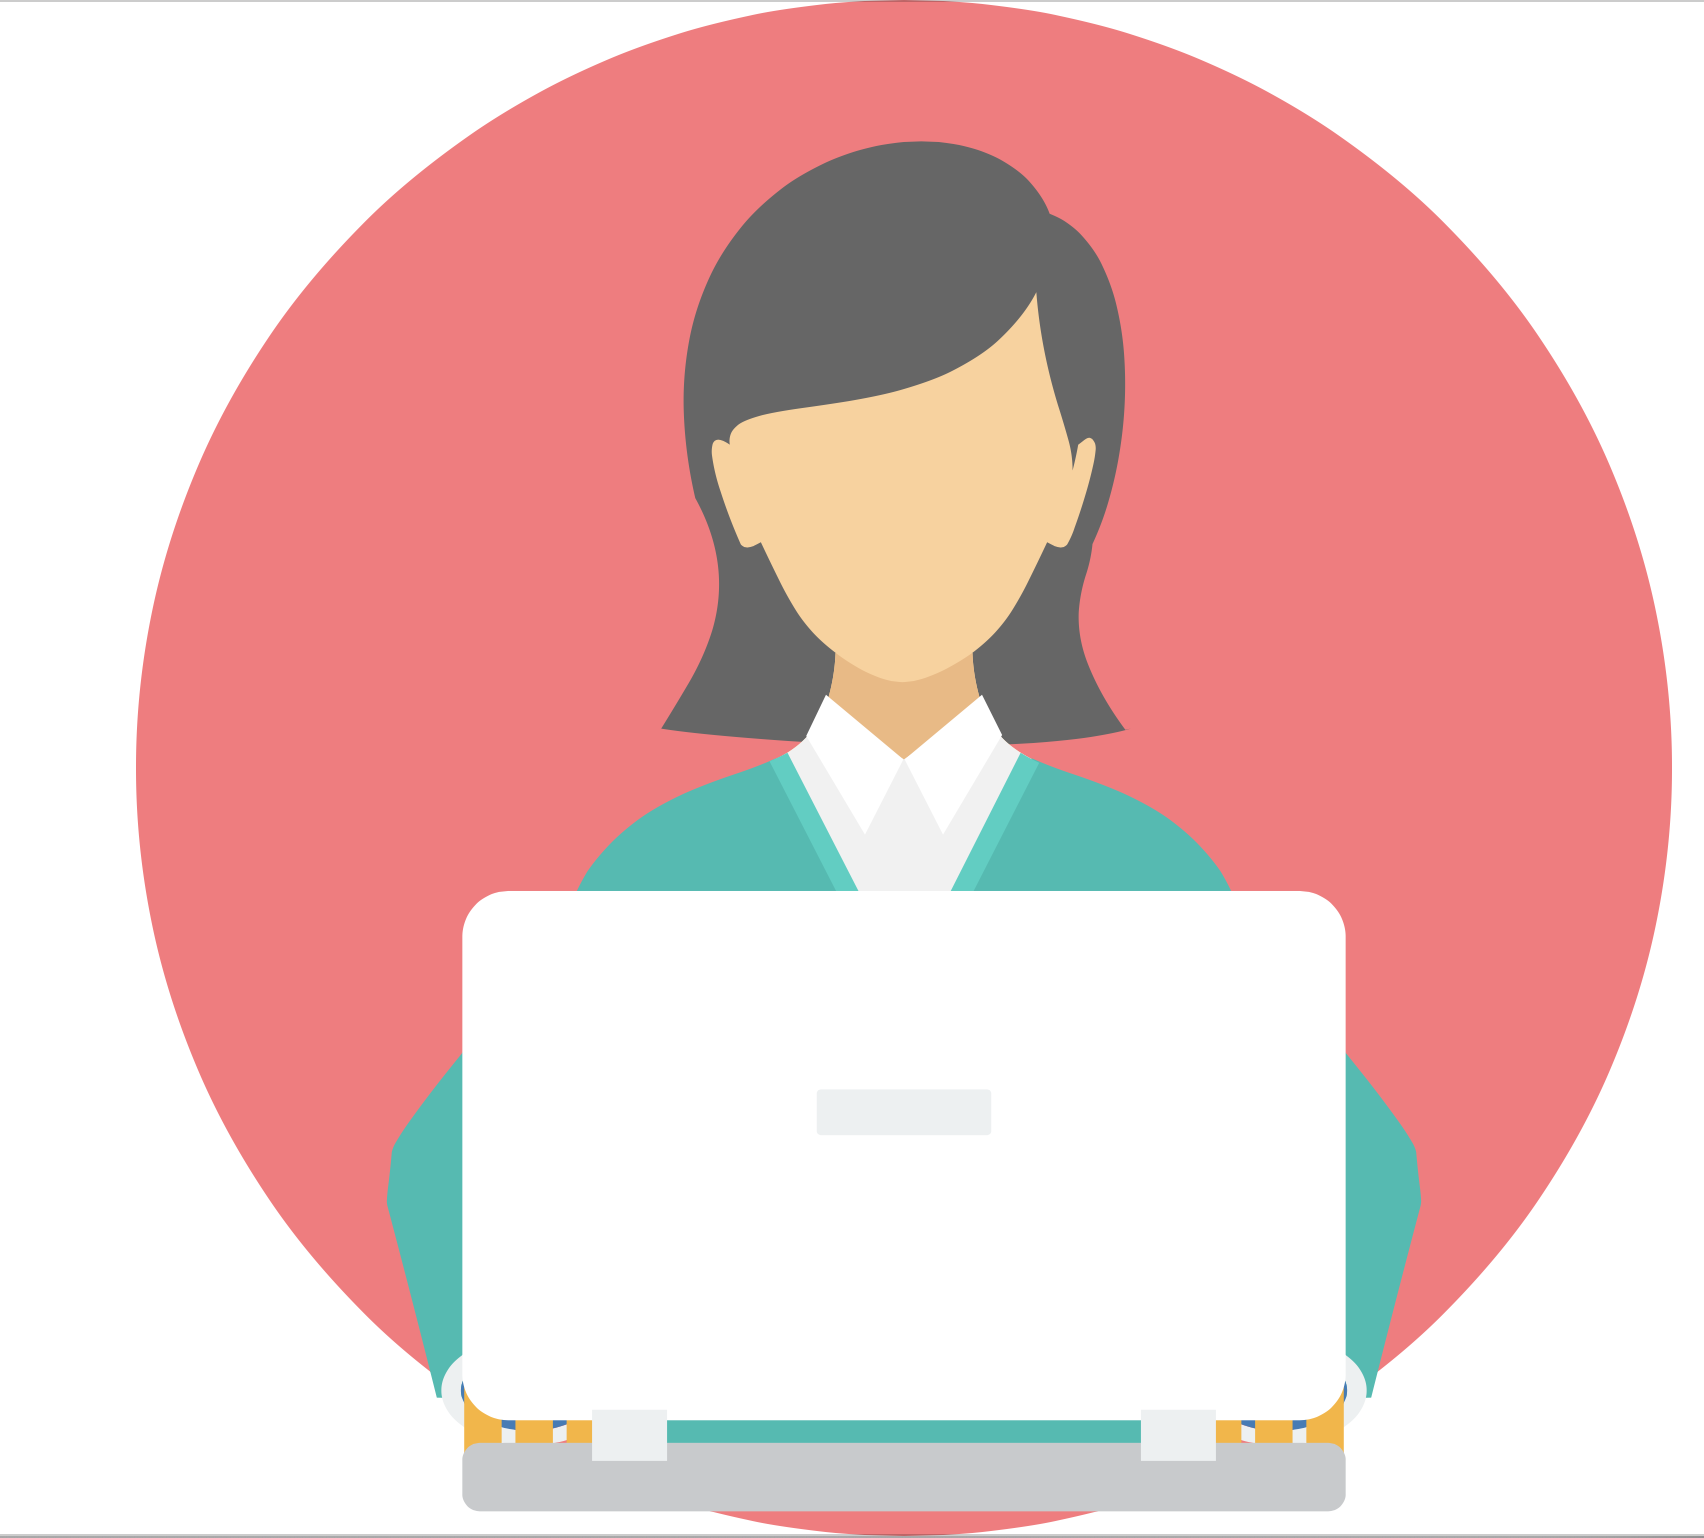 An image of a woman using a laptop.